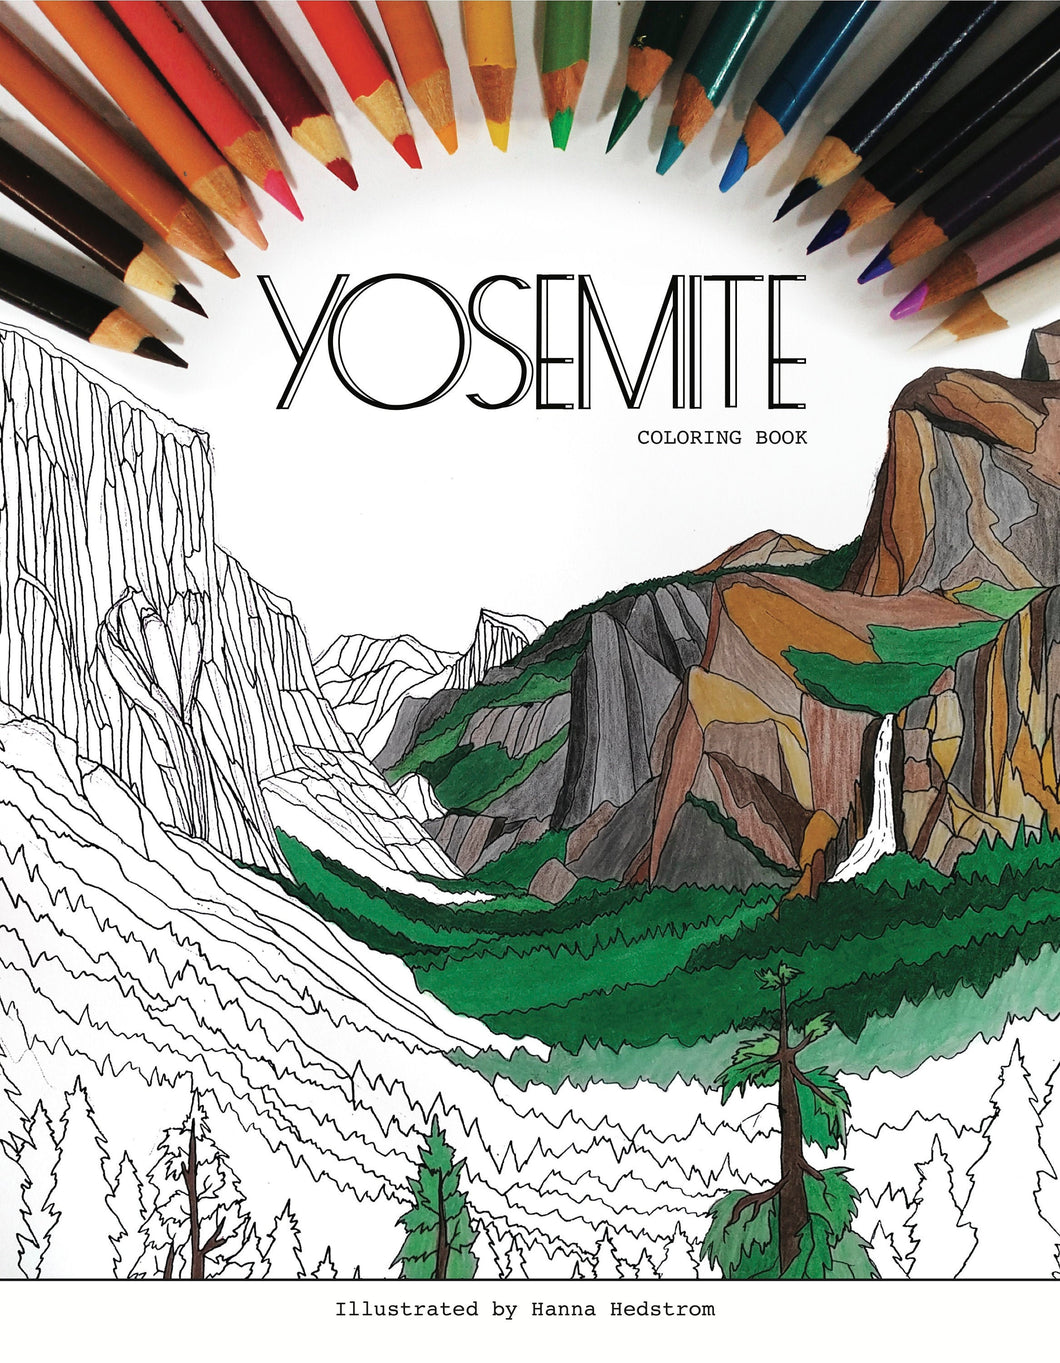 Yosemite Coloring Book PDF Download